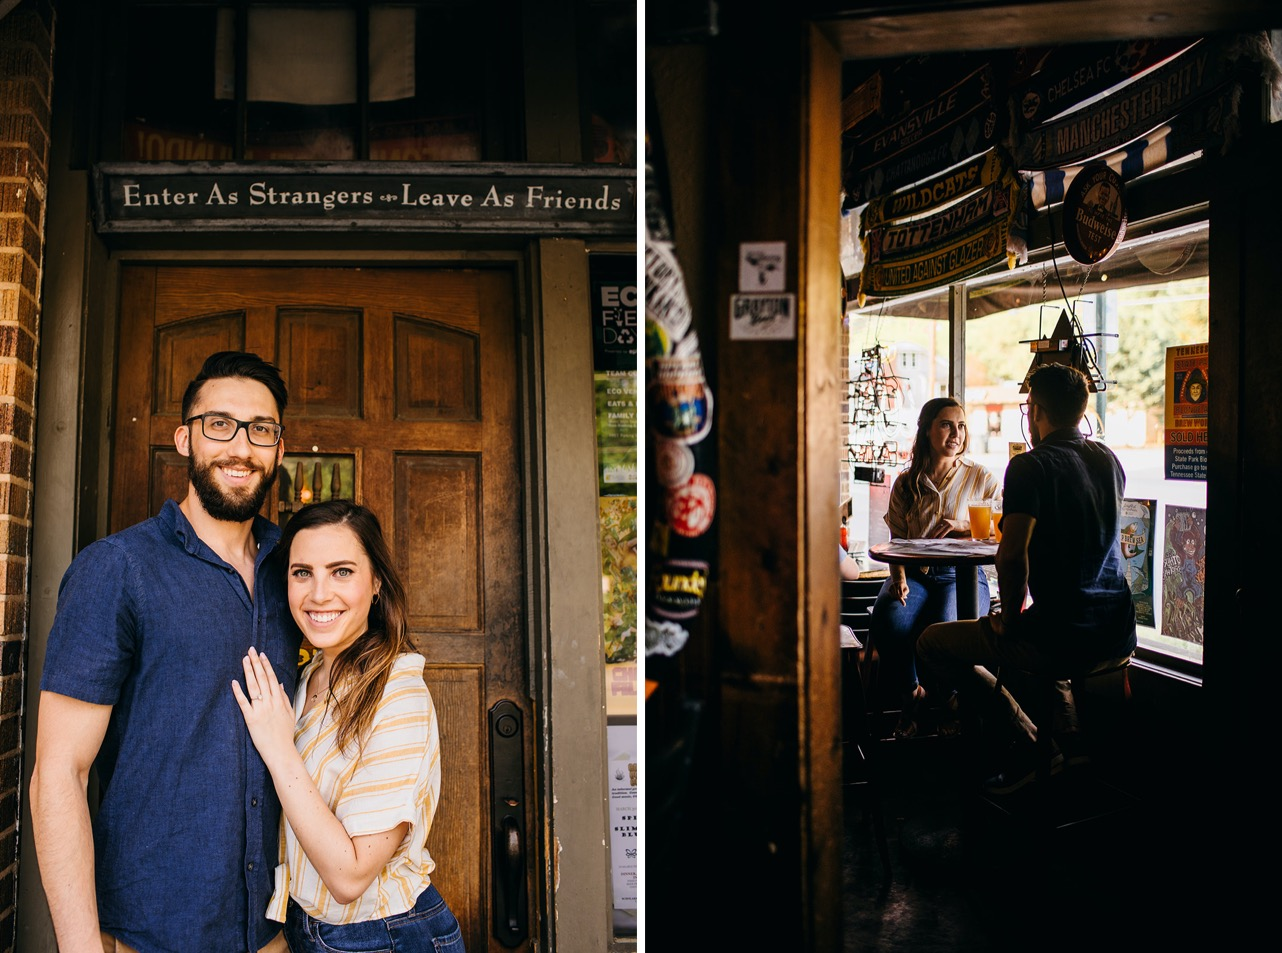 A couple embrace and pose for a photo outside the door of their favorite bar.